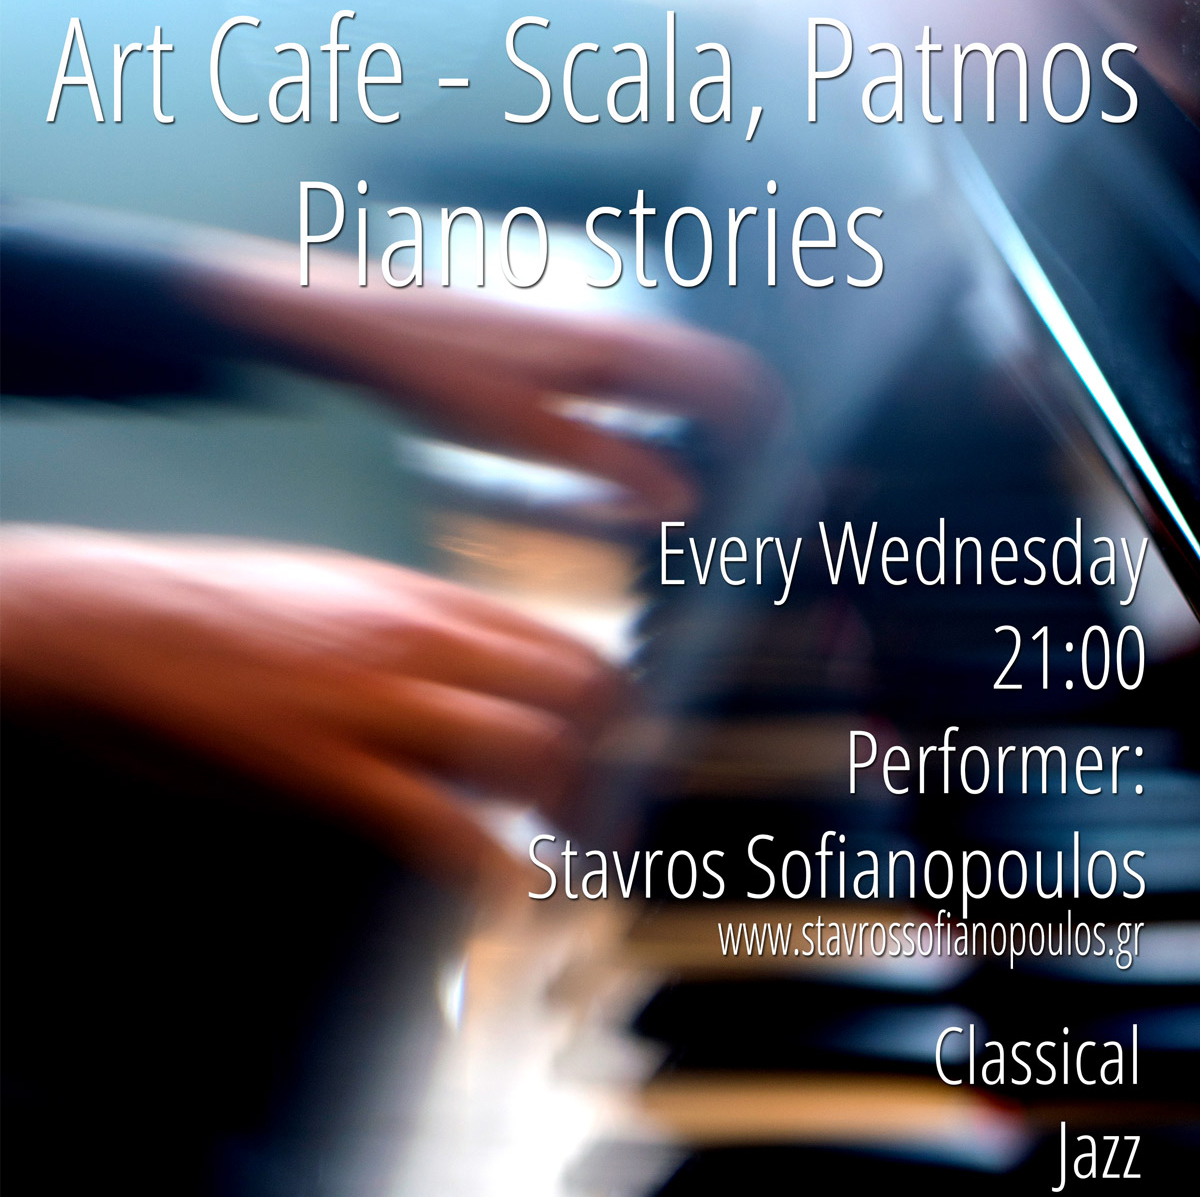 Art Cafe - Skala, Patmos Piano stories 2017